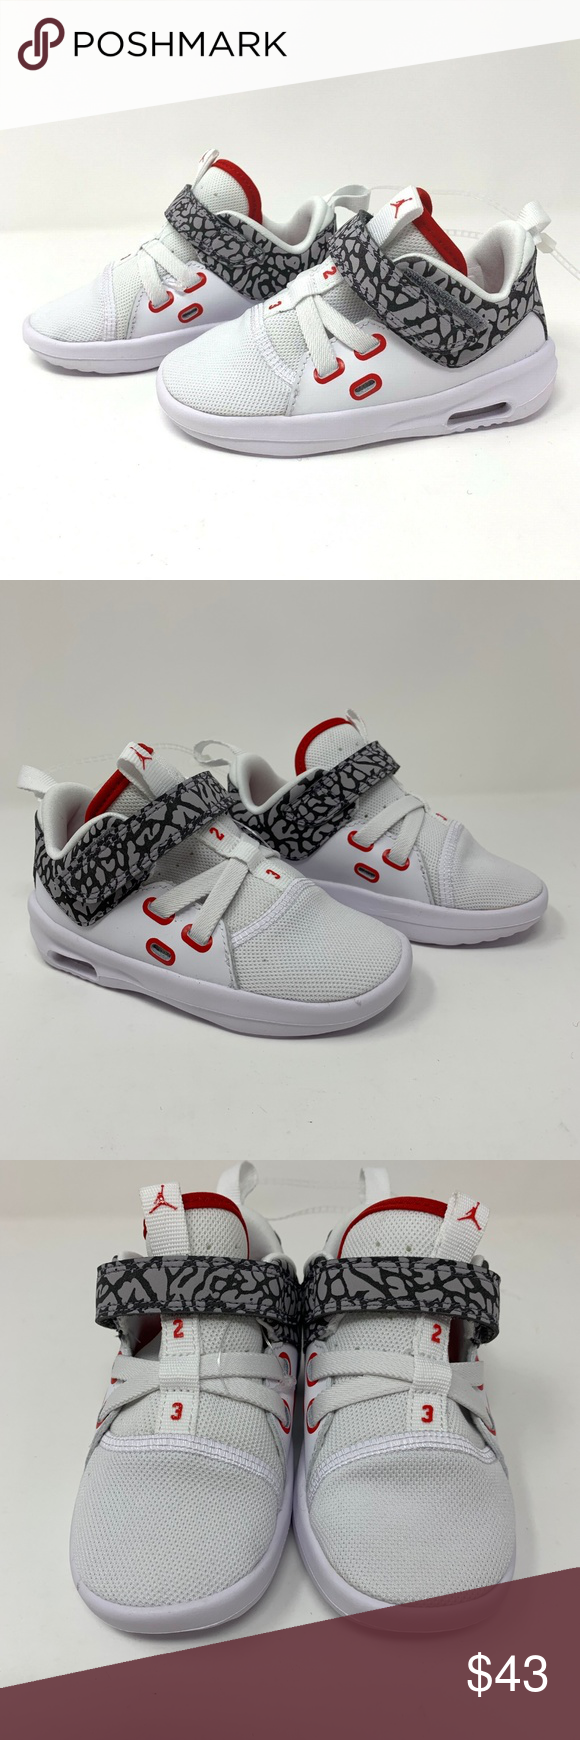 cheap for discount 3b2a2 33fa0 Nike Air Jordan First Class Boys Toddler Size 8C Nike Air ...